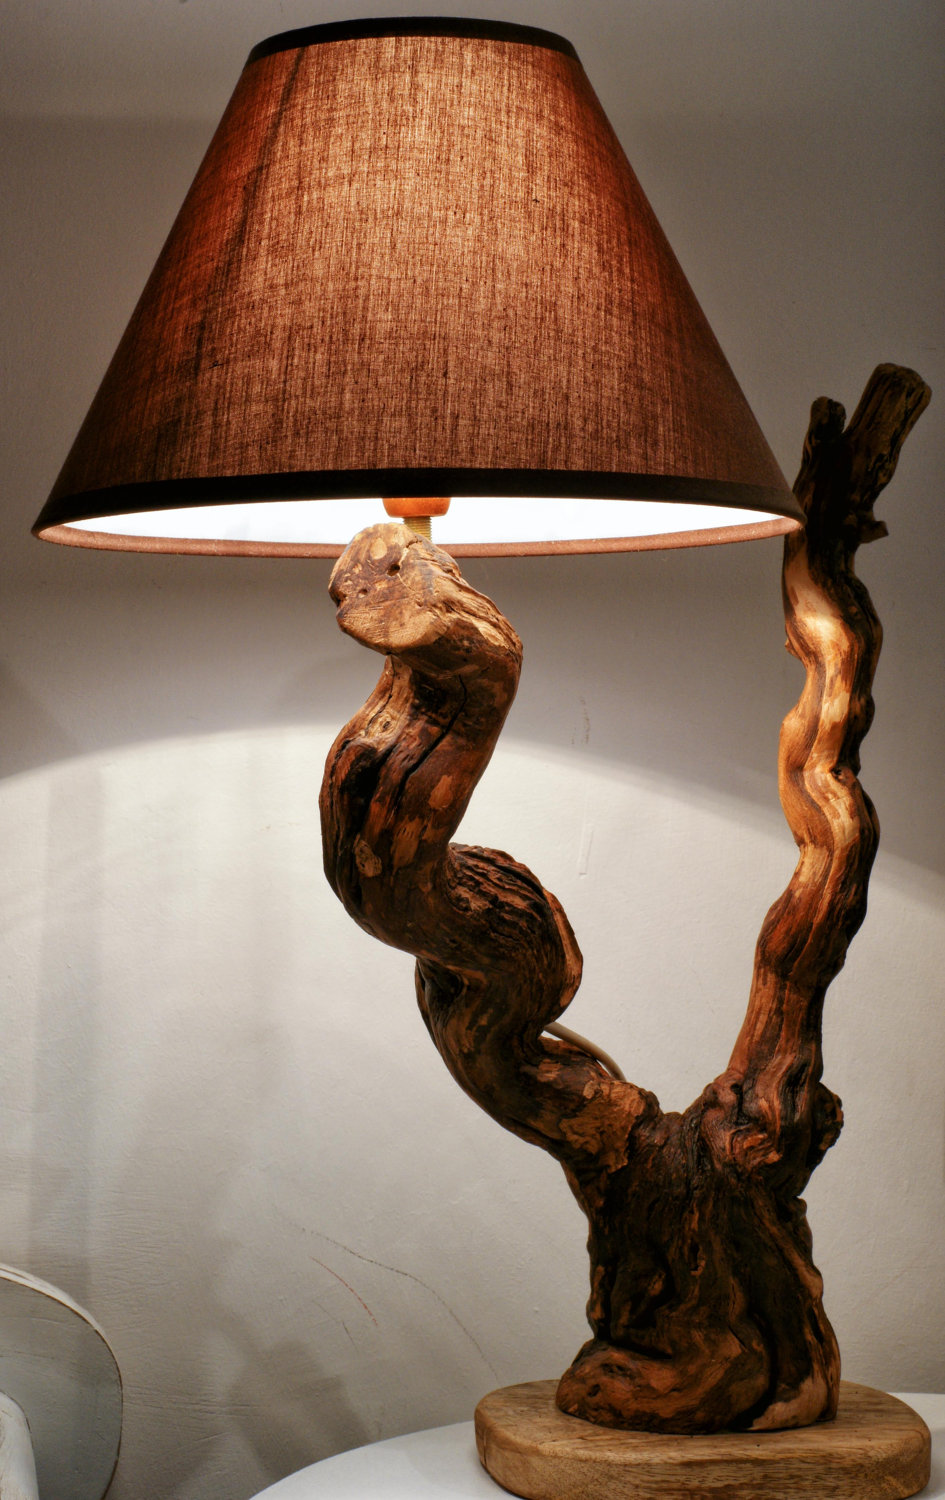 Do You Like To Have A handmade Wooden Lamp? | Pouted ...